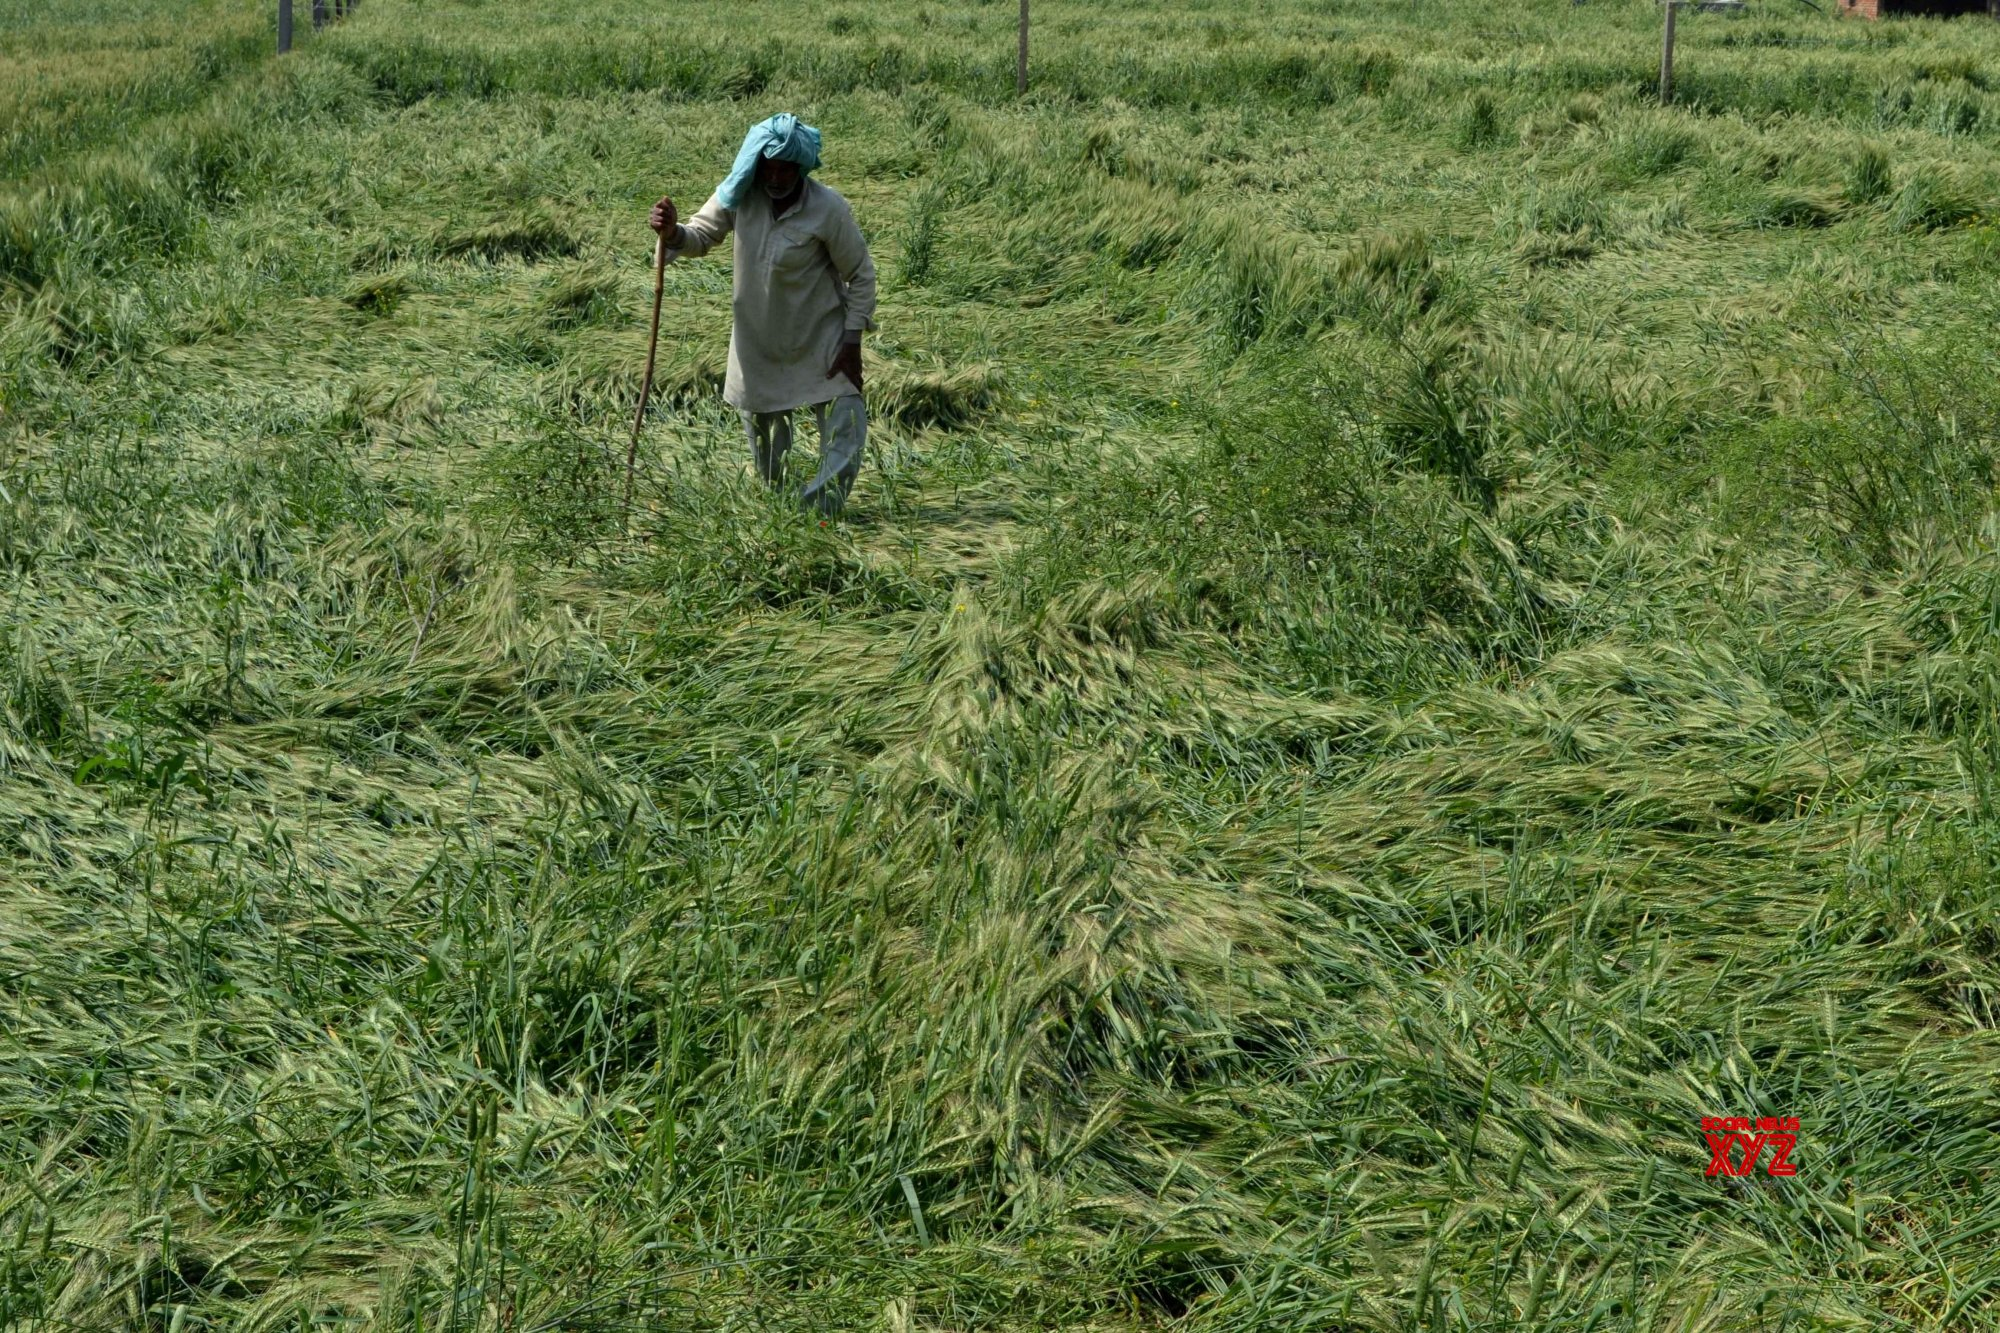 Bengal farmer dies in queue for crop loss compensation